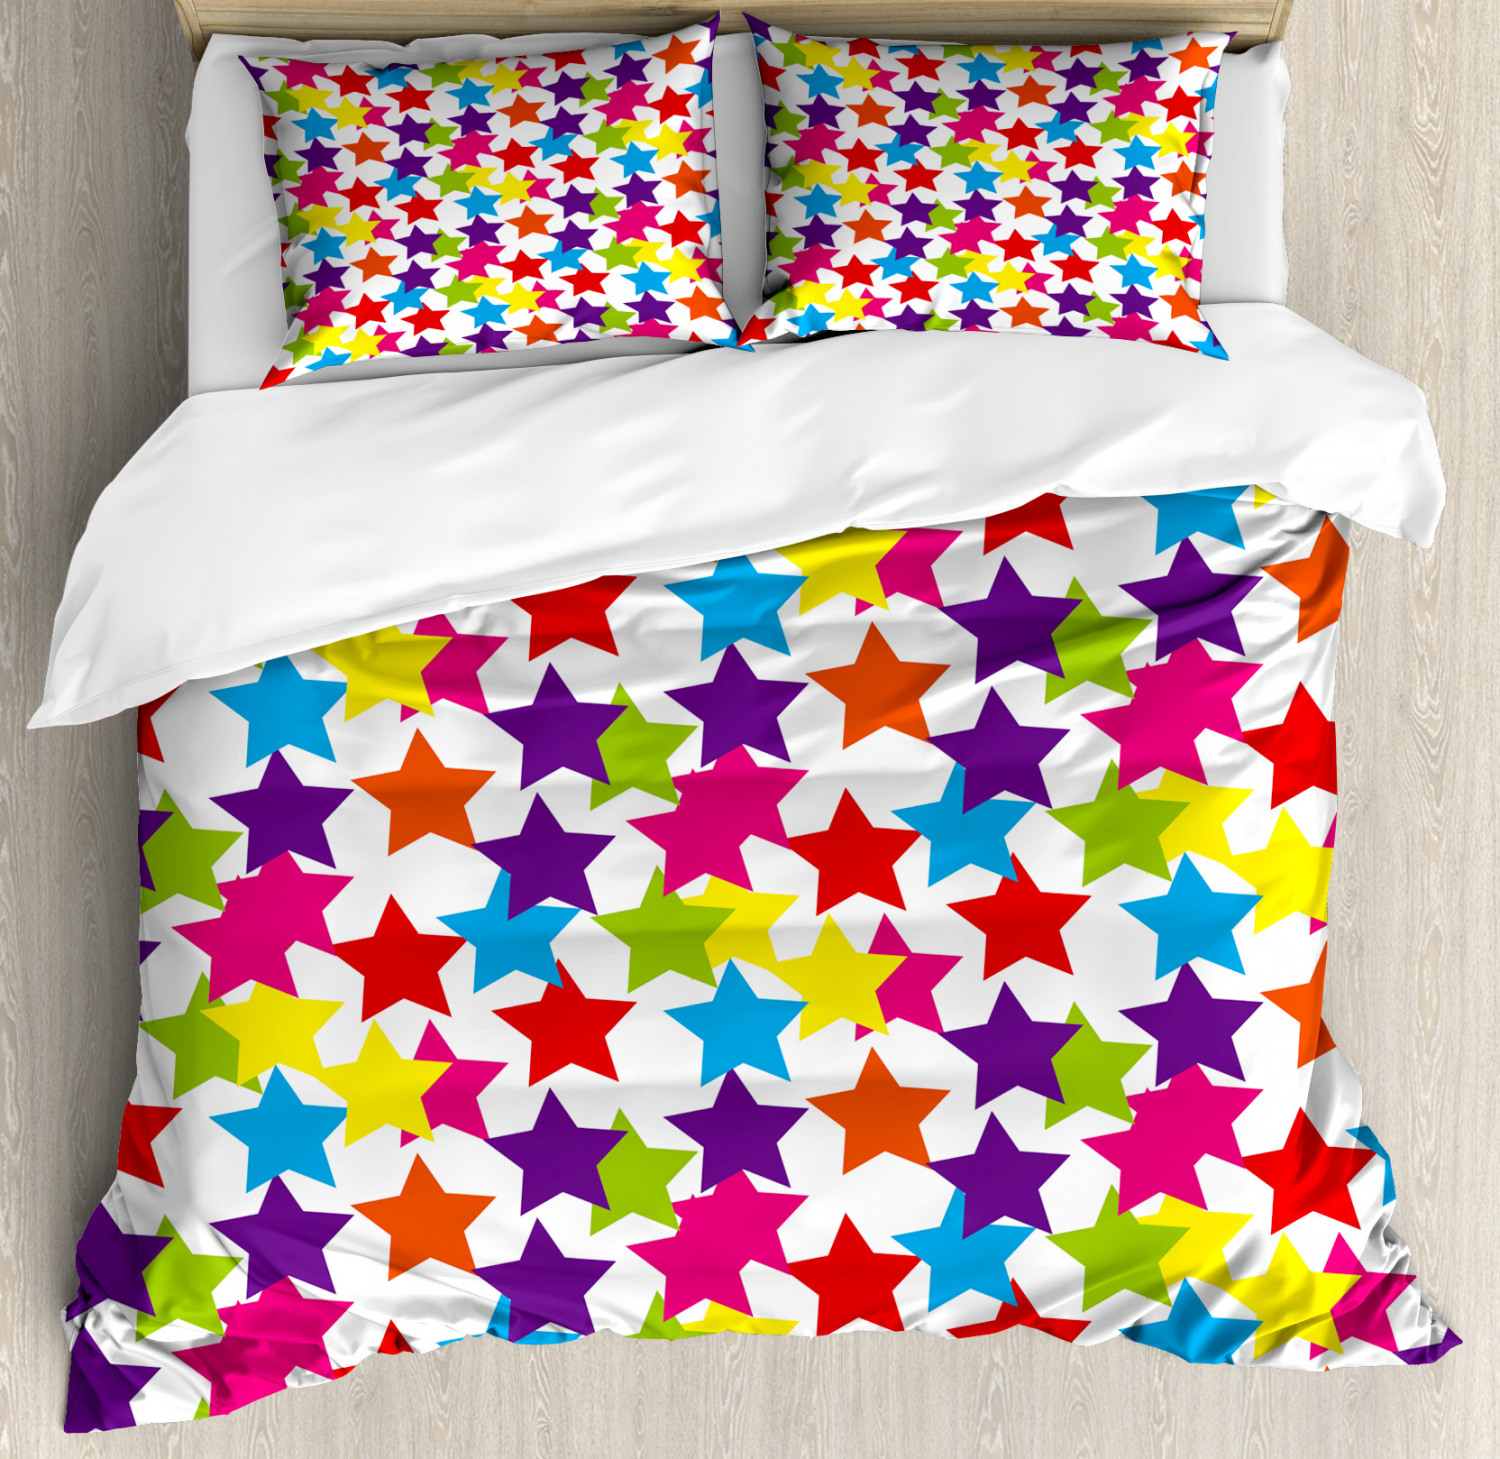 Rainbow Duvet Cover Set with Pillow Shams Funky Stars Kids Room Print